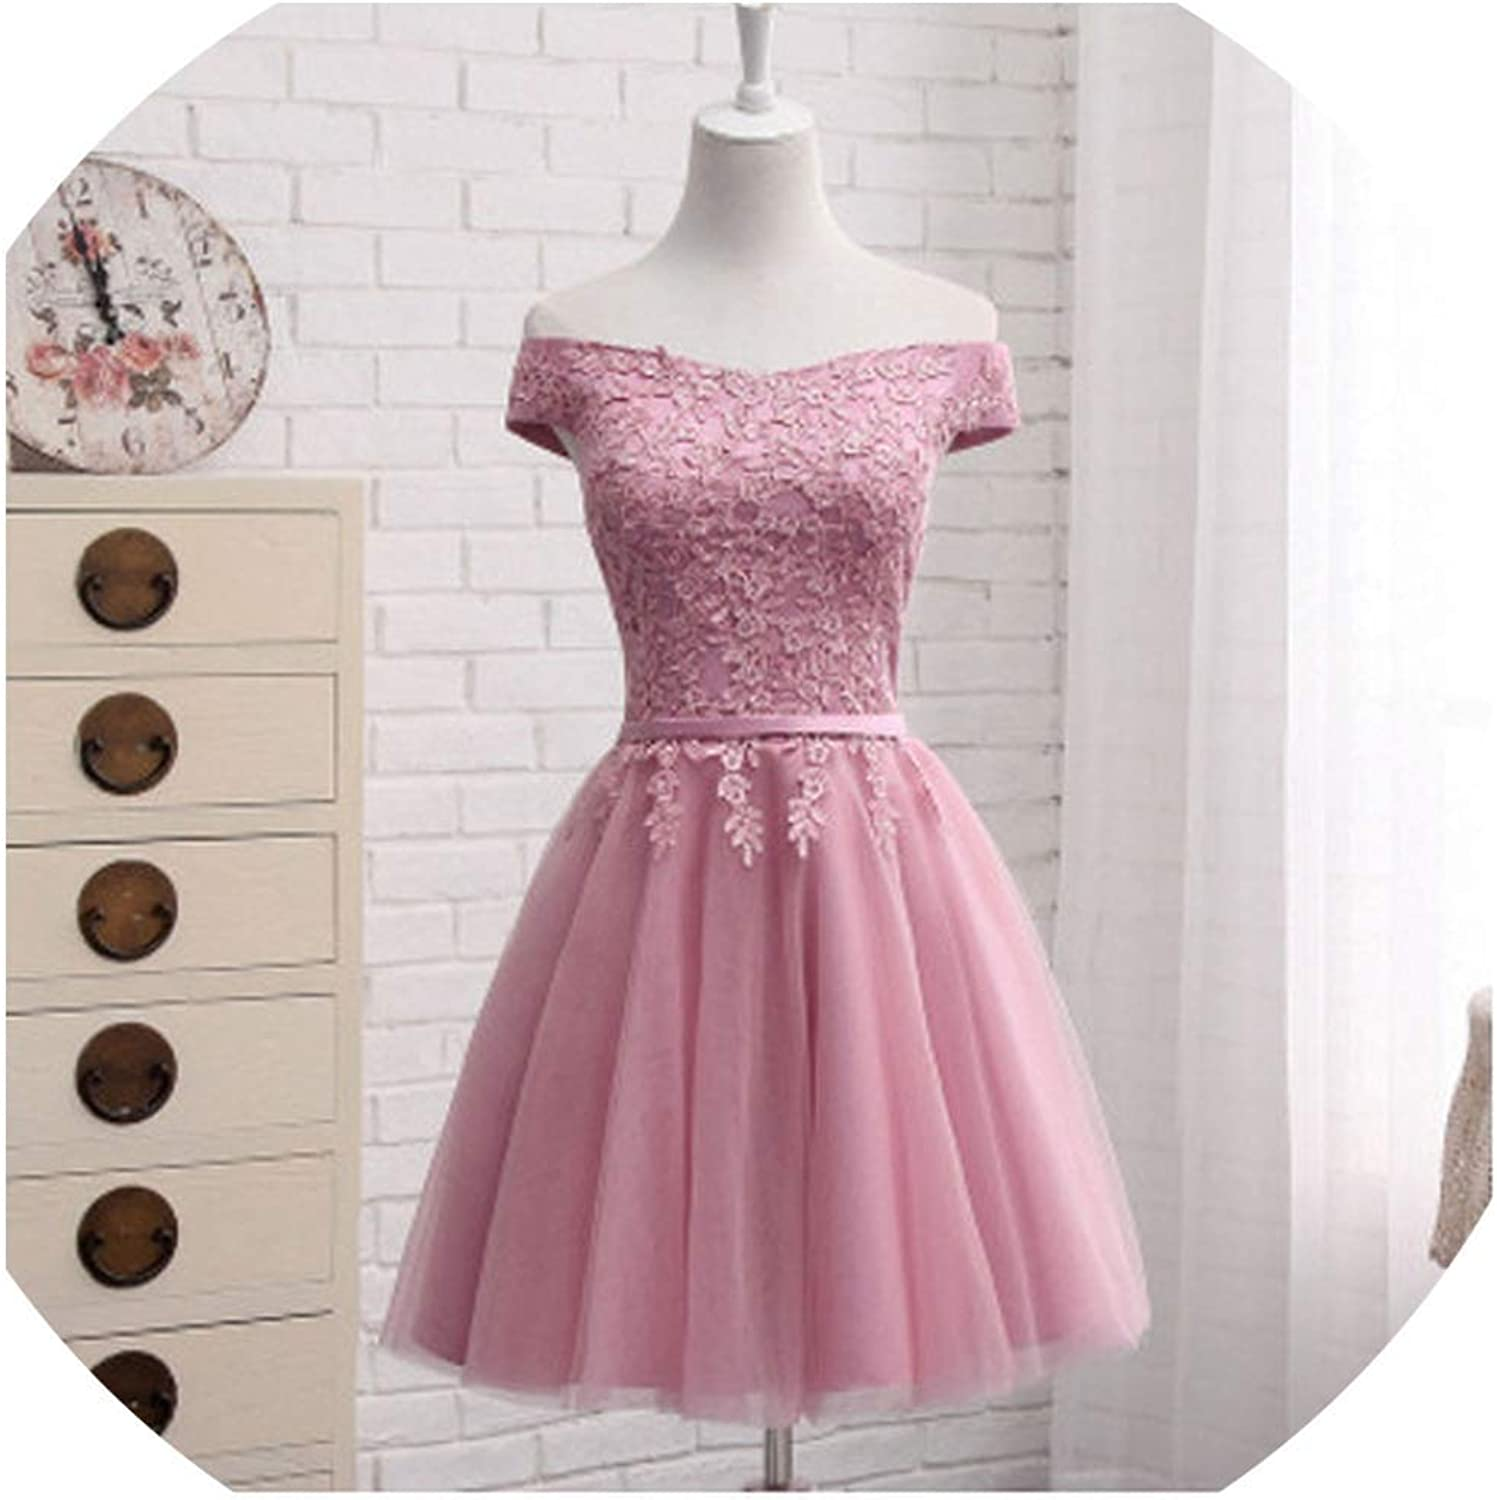 Bridesmaid Dresses FloorLength Boat Neck Cap Sleeve Applique Embroidery Dress